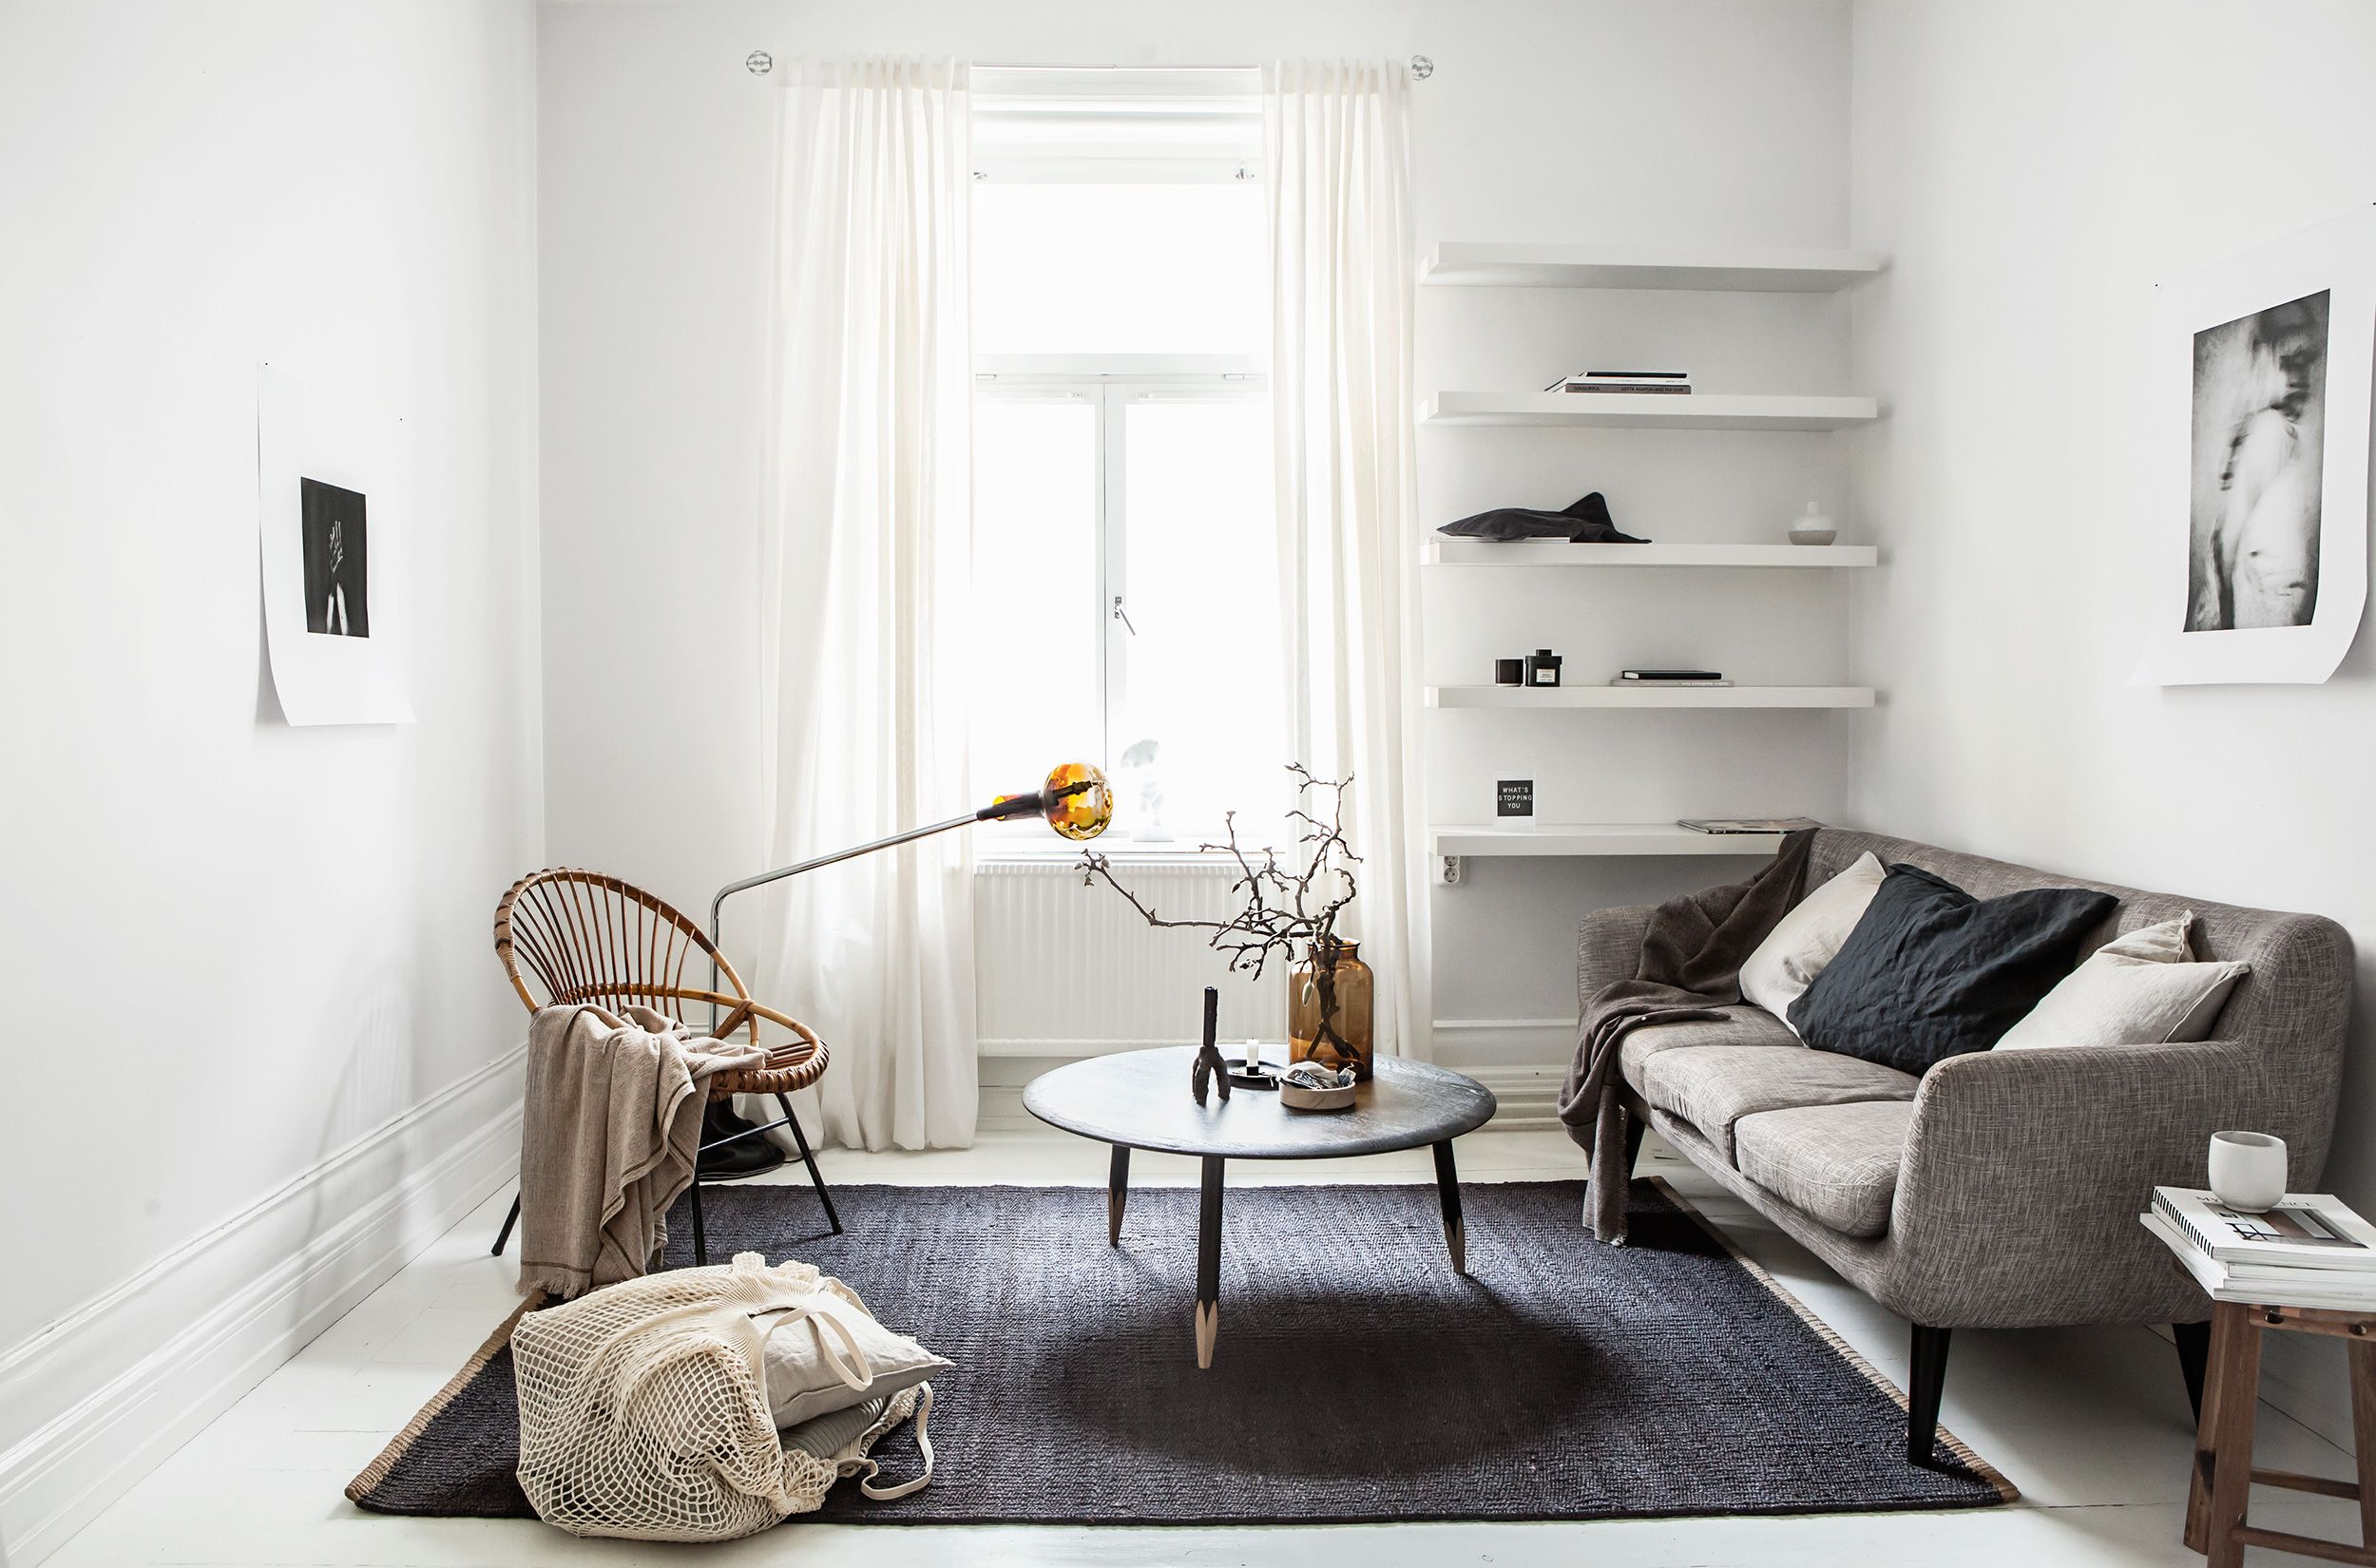 How to have a minimalist decor in your   home with no clutter